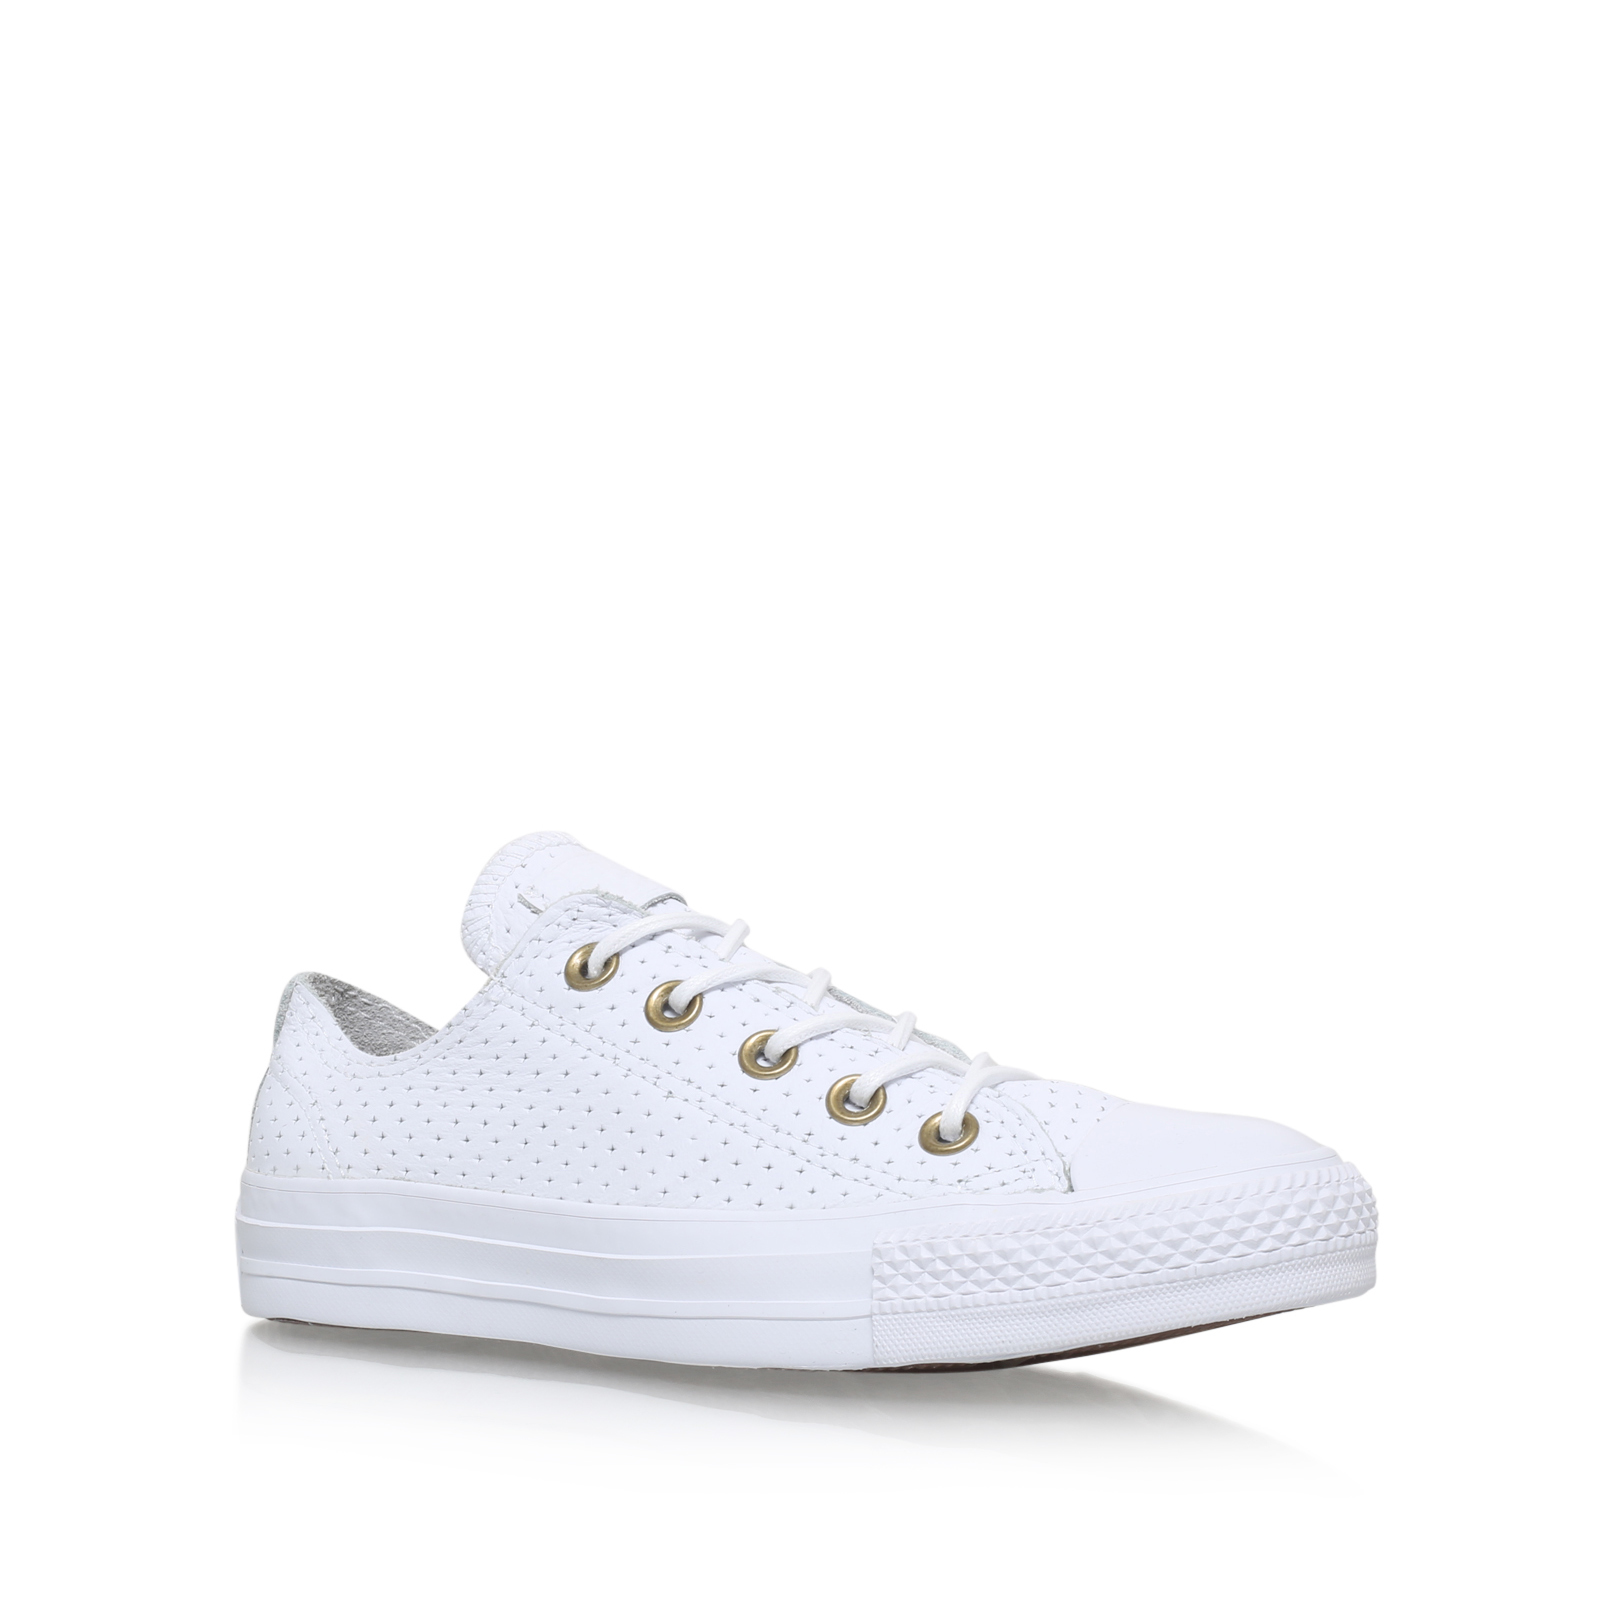 CRAFT LEATHER LOW